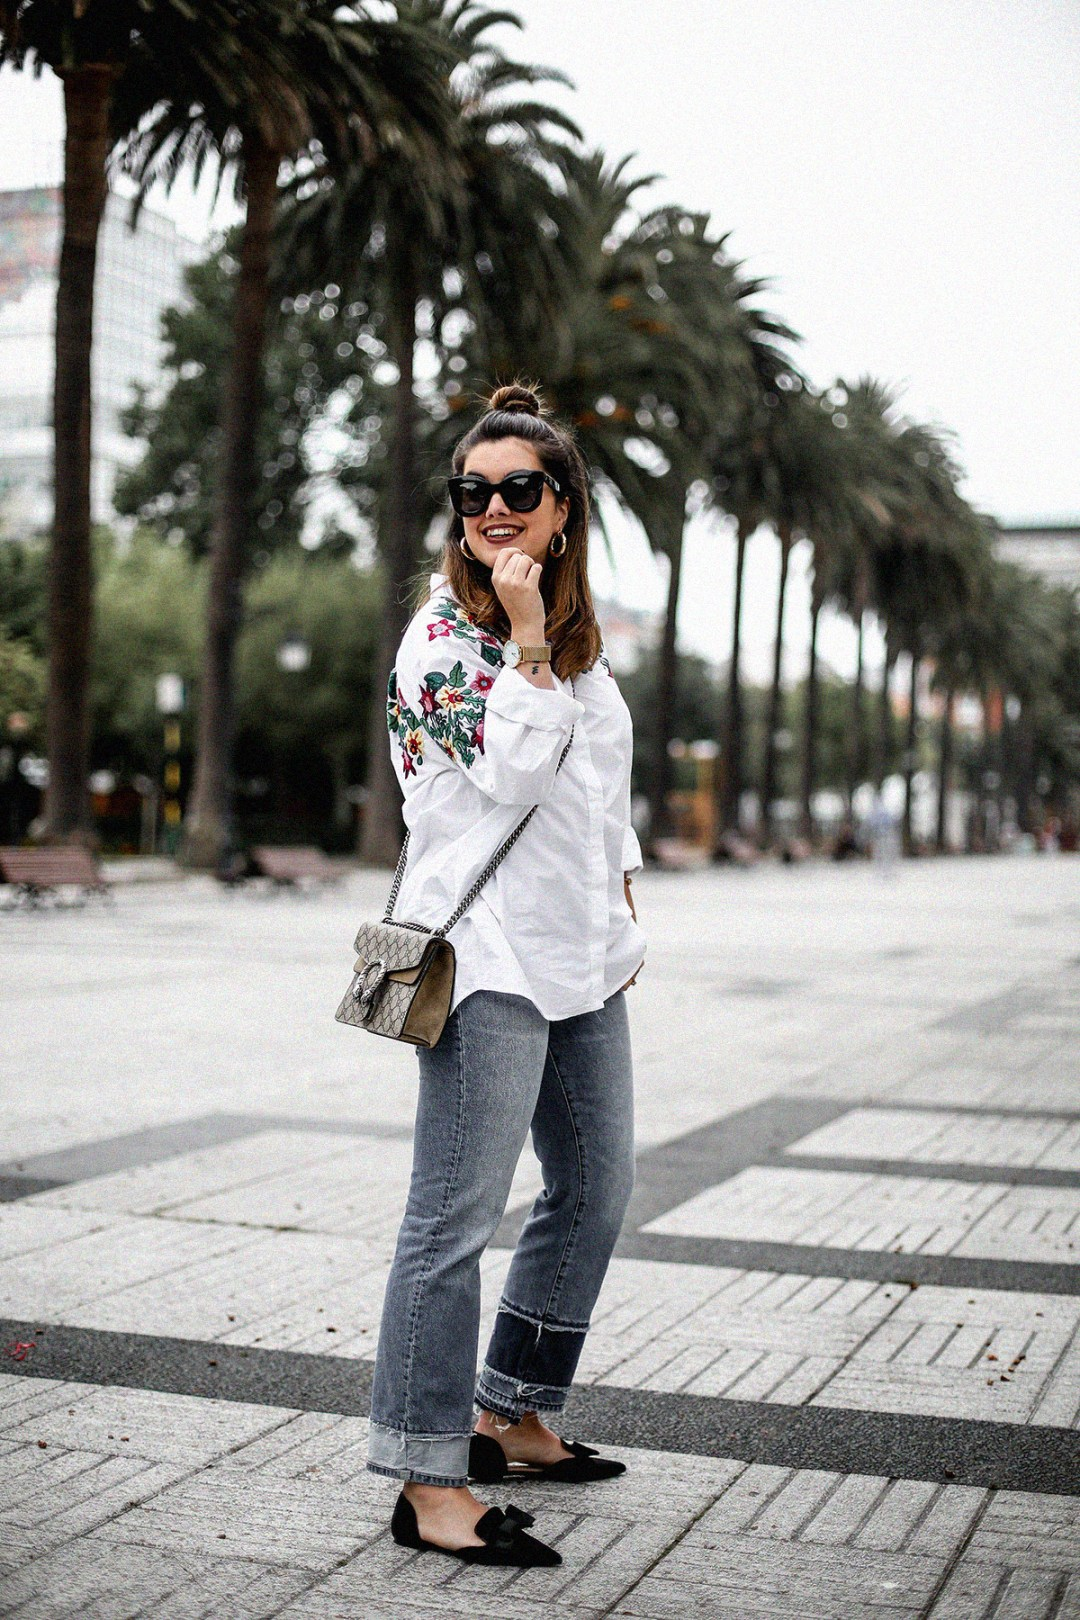 embroidered-white-blouse-bow-flats-hm-gucci-dionysus-streetstyle6